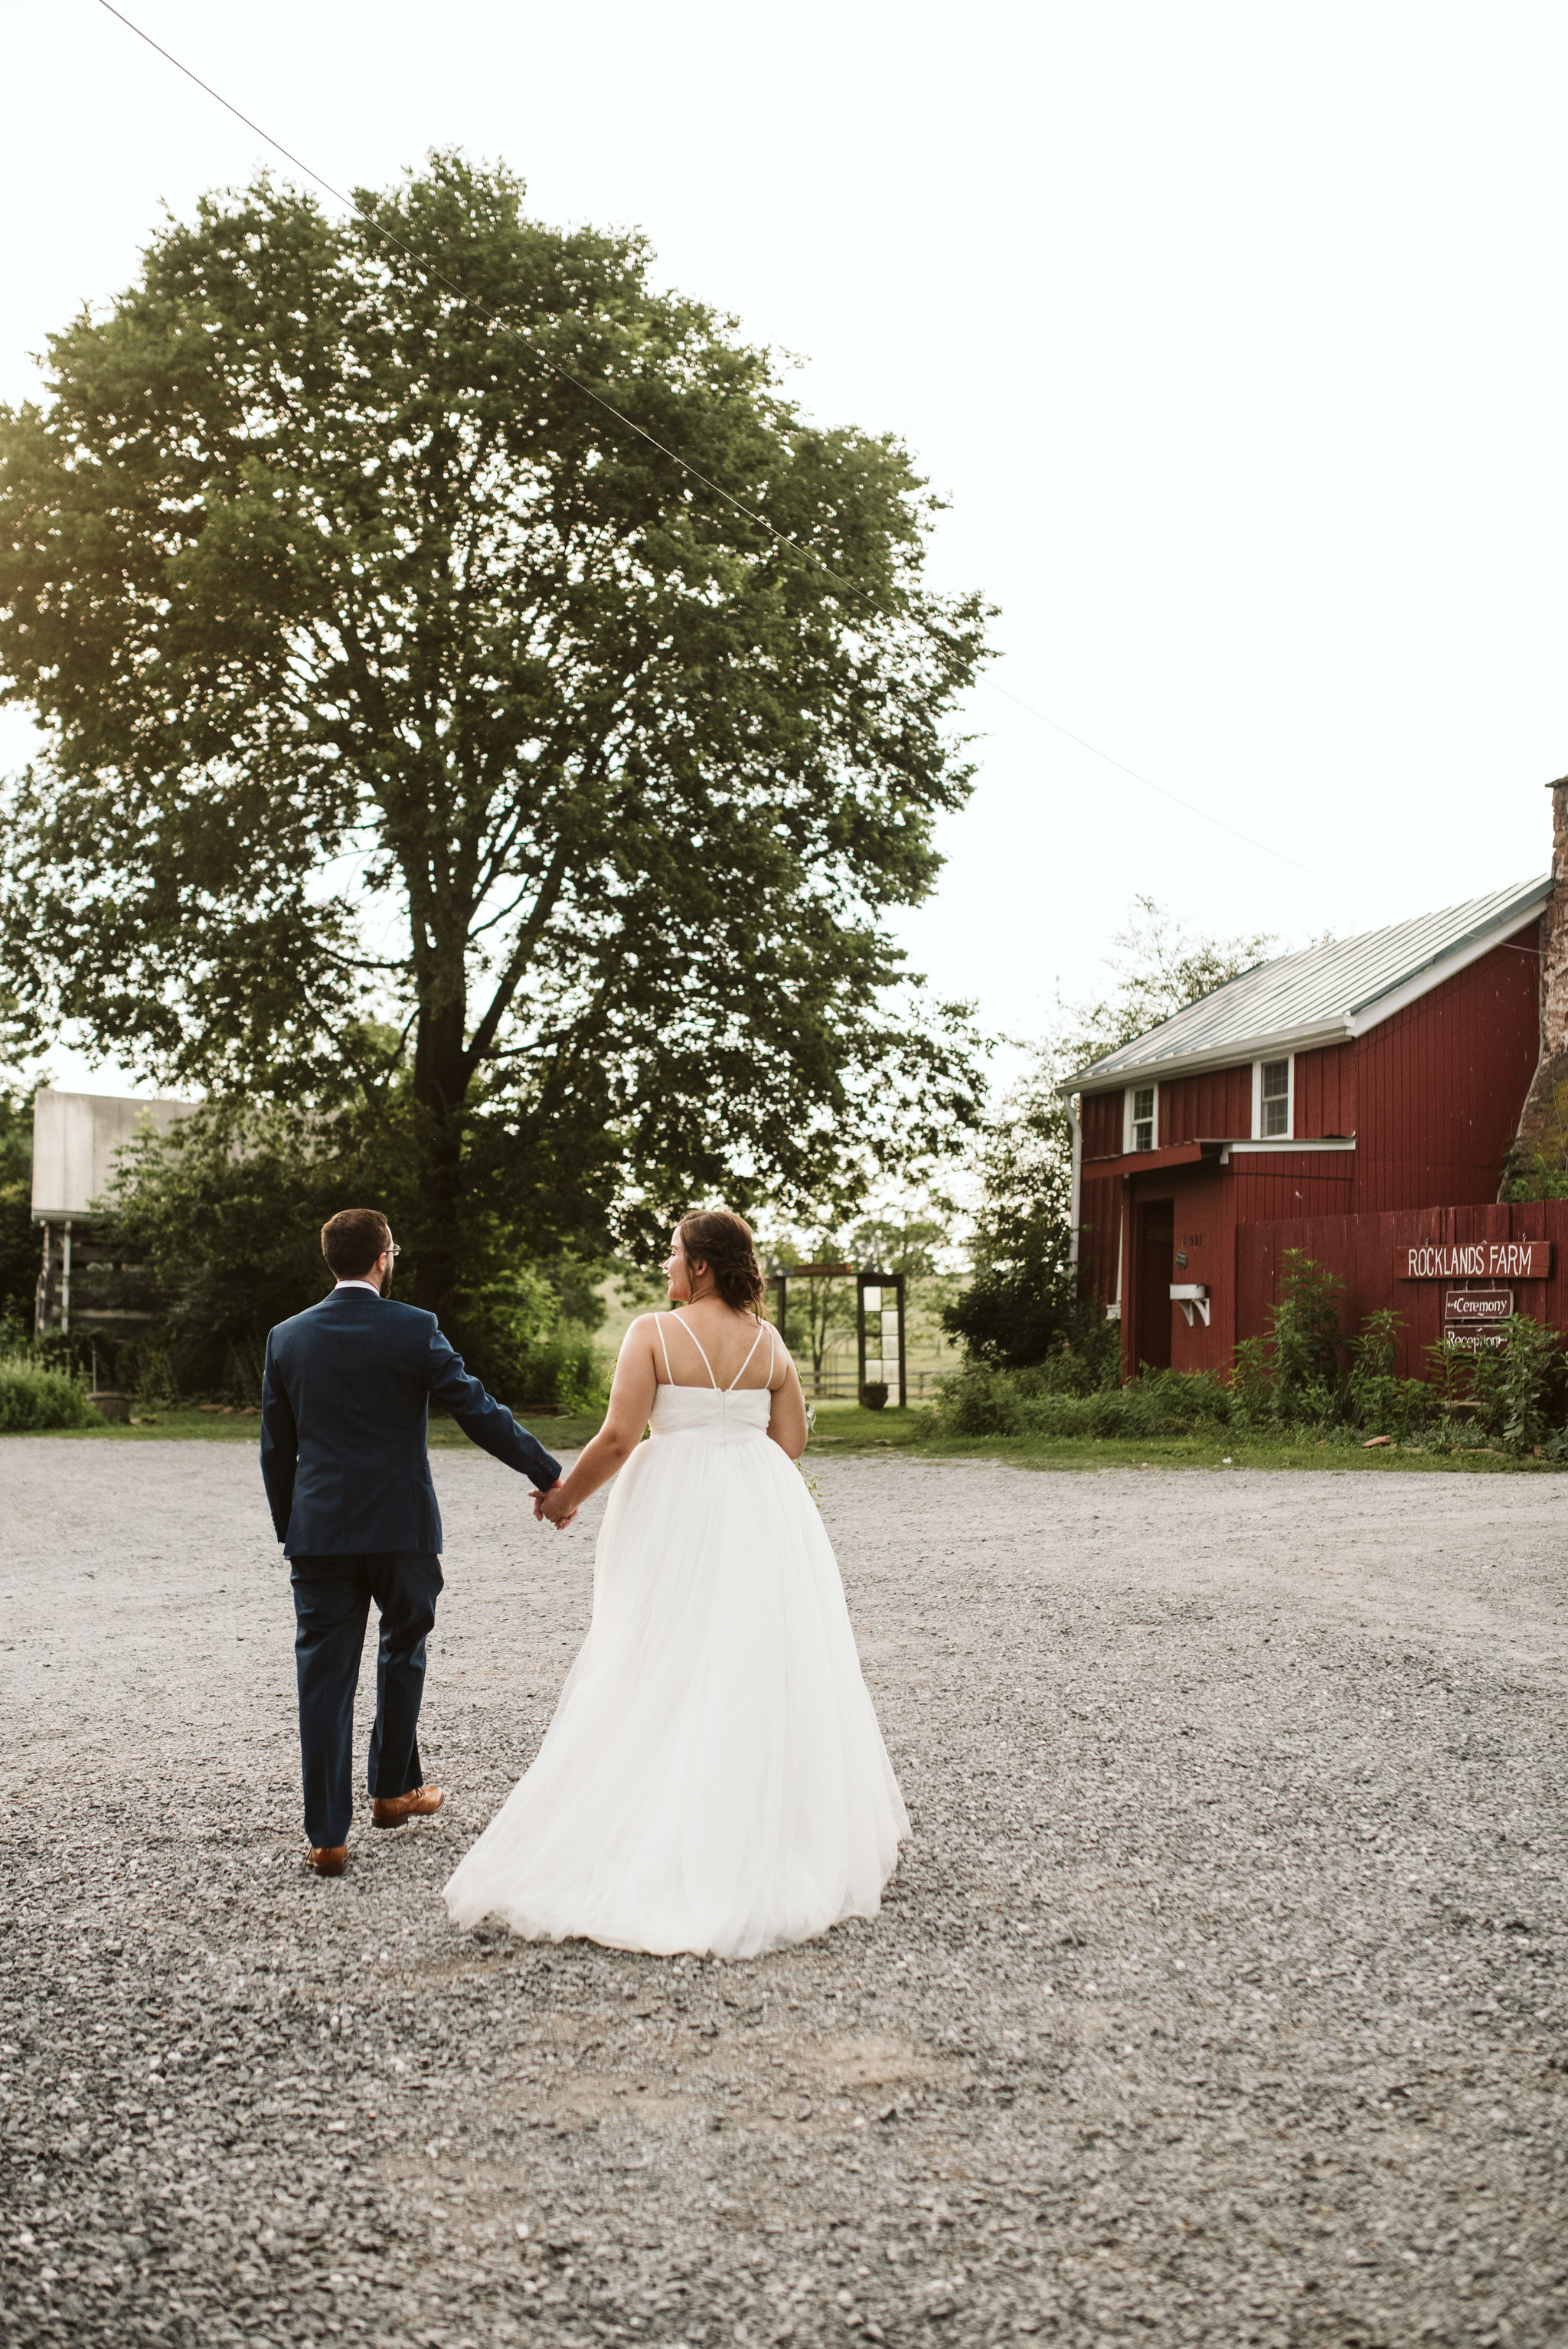 Rocklands Farm, Maryland, Intimate Wedding, Baltimore Wedding Photographer, Sungold Flower Co, Rustic, Romantic, Barn Wedding, Bride and Groom Holding Hands Walking Outside, Just Married